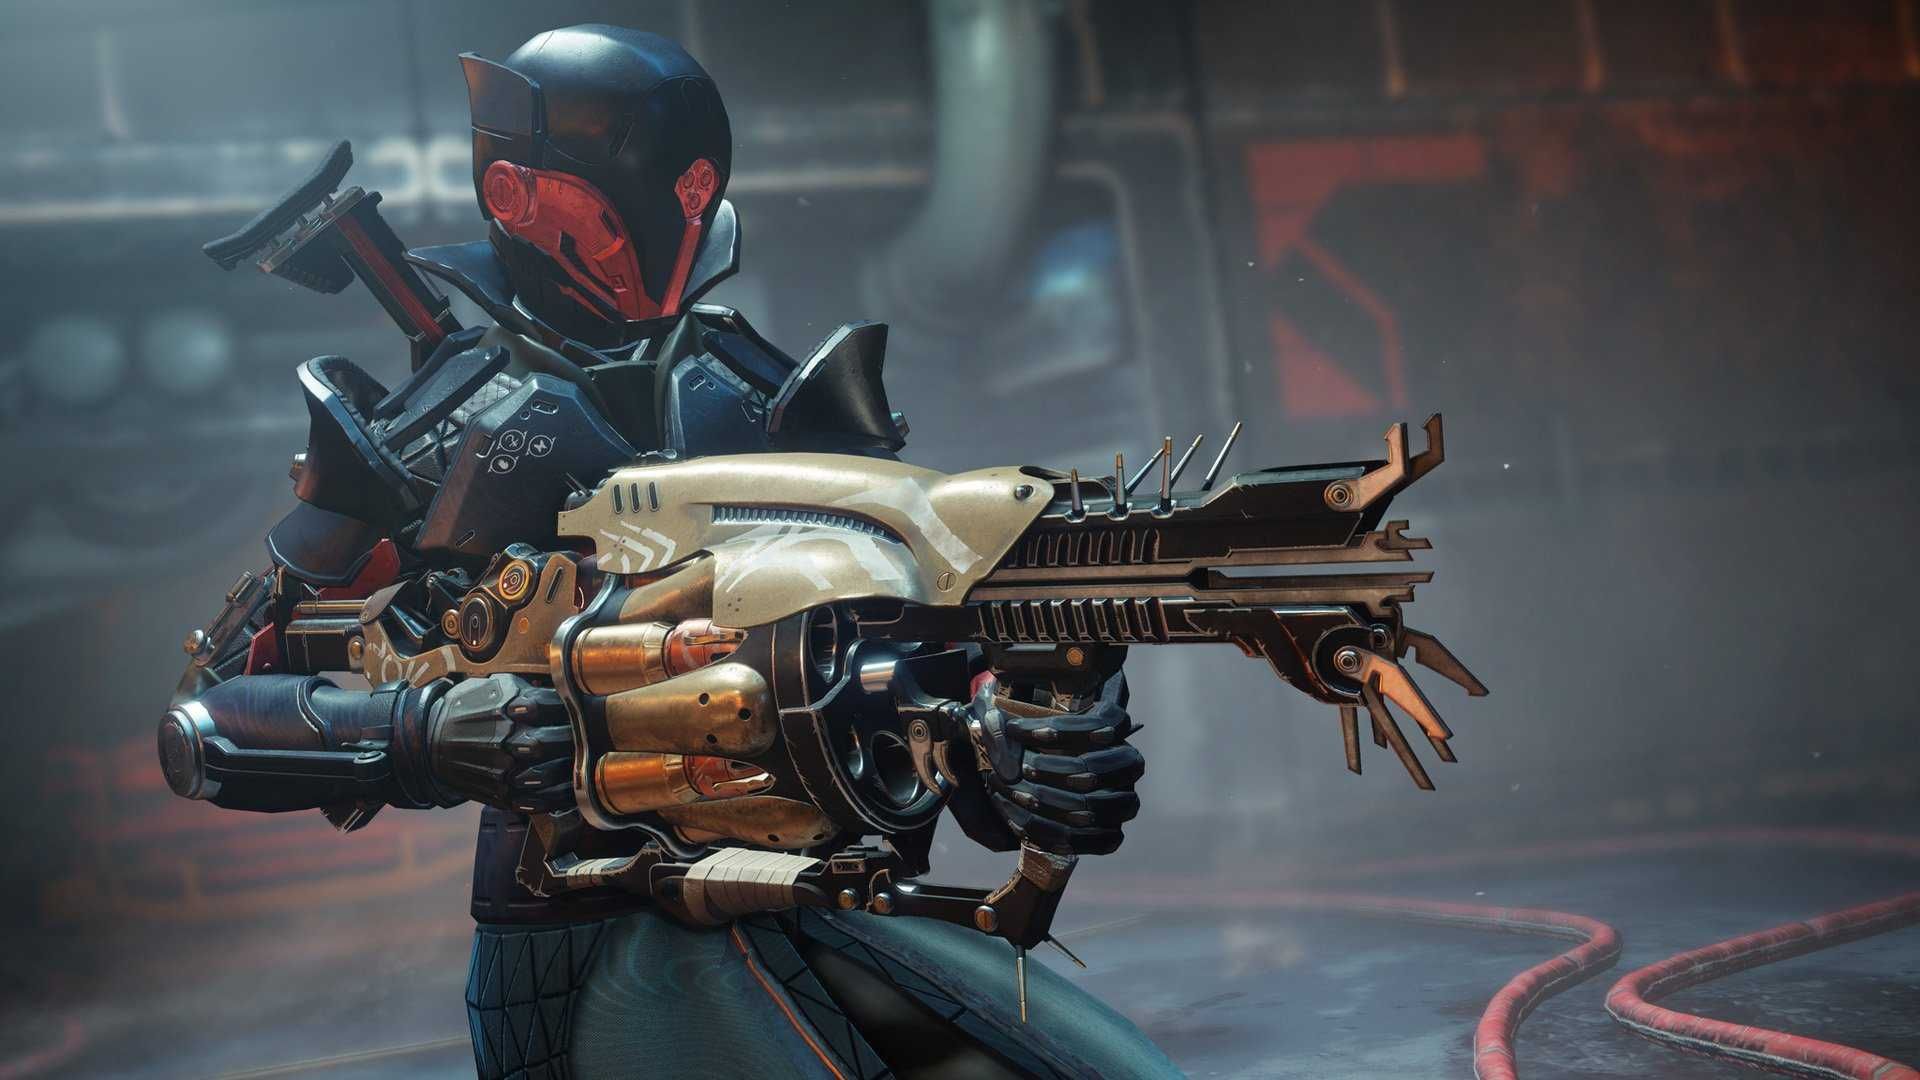 black armory, black armory forge locations, Destiny 2, destiny 2 forge, destiny 2 forge locations, forge destiny 2, forge locations, forge locations destiny 2, izanami forge location, volundr forge location